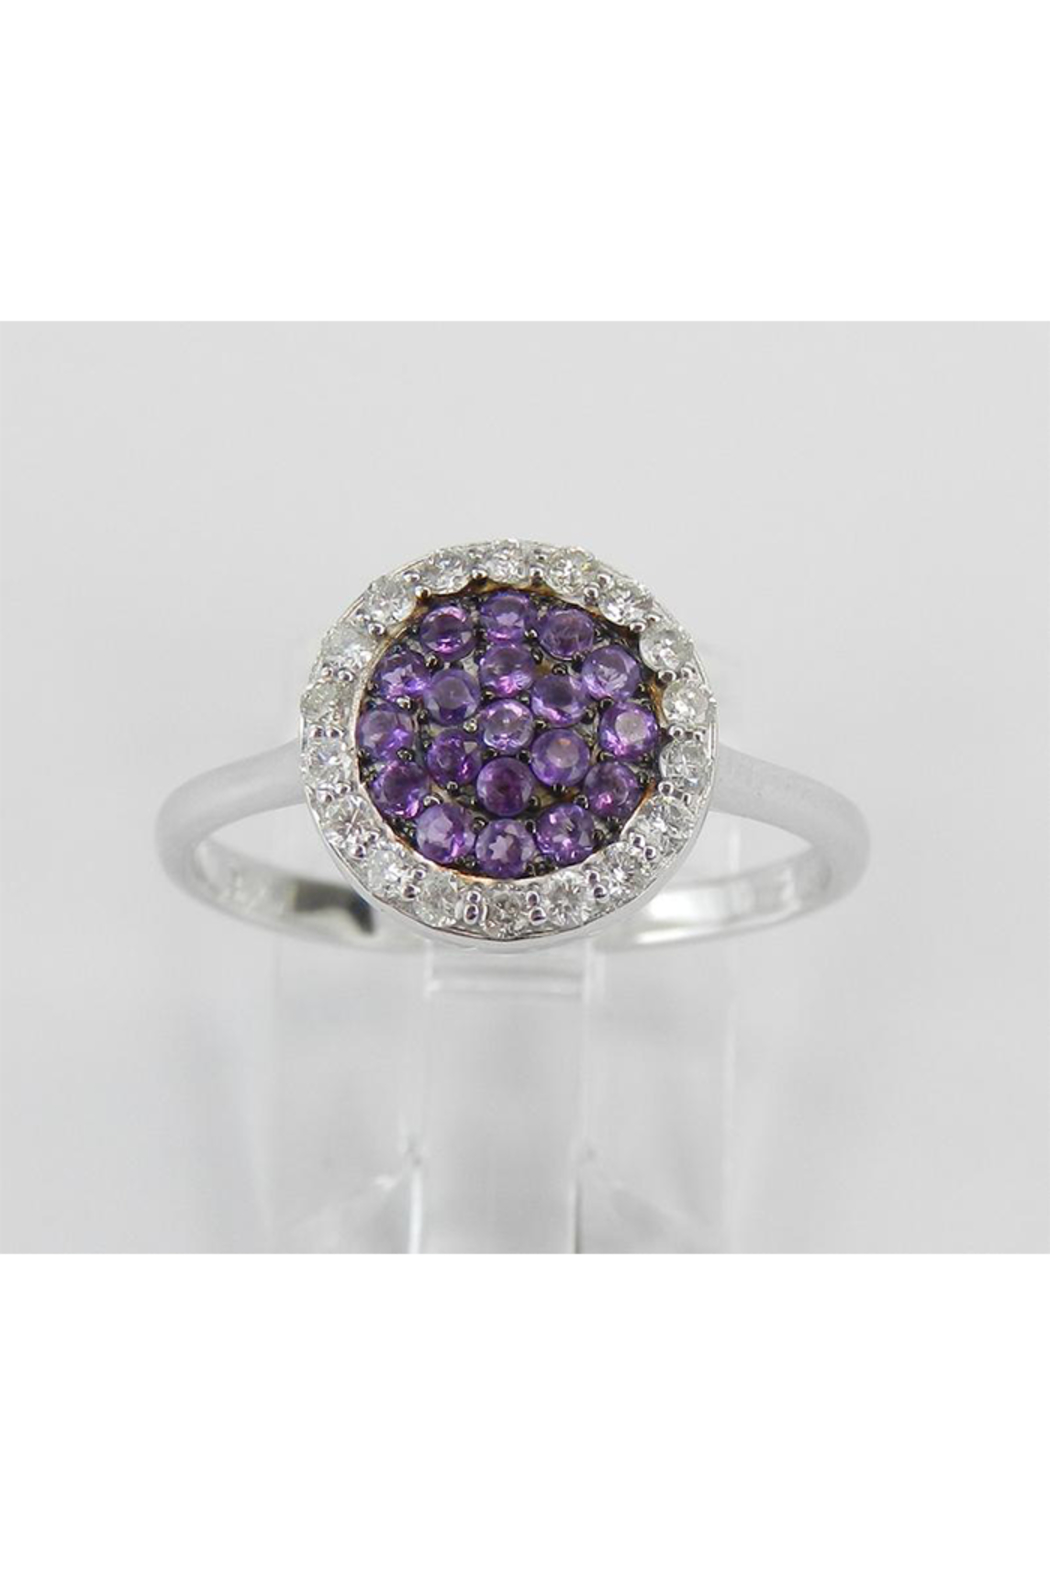 Margolin & Co 14K White Gold Diamond and Amethyst Cluster Promise Cocktail Ring Size 7.25 - Main Image